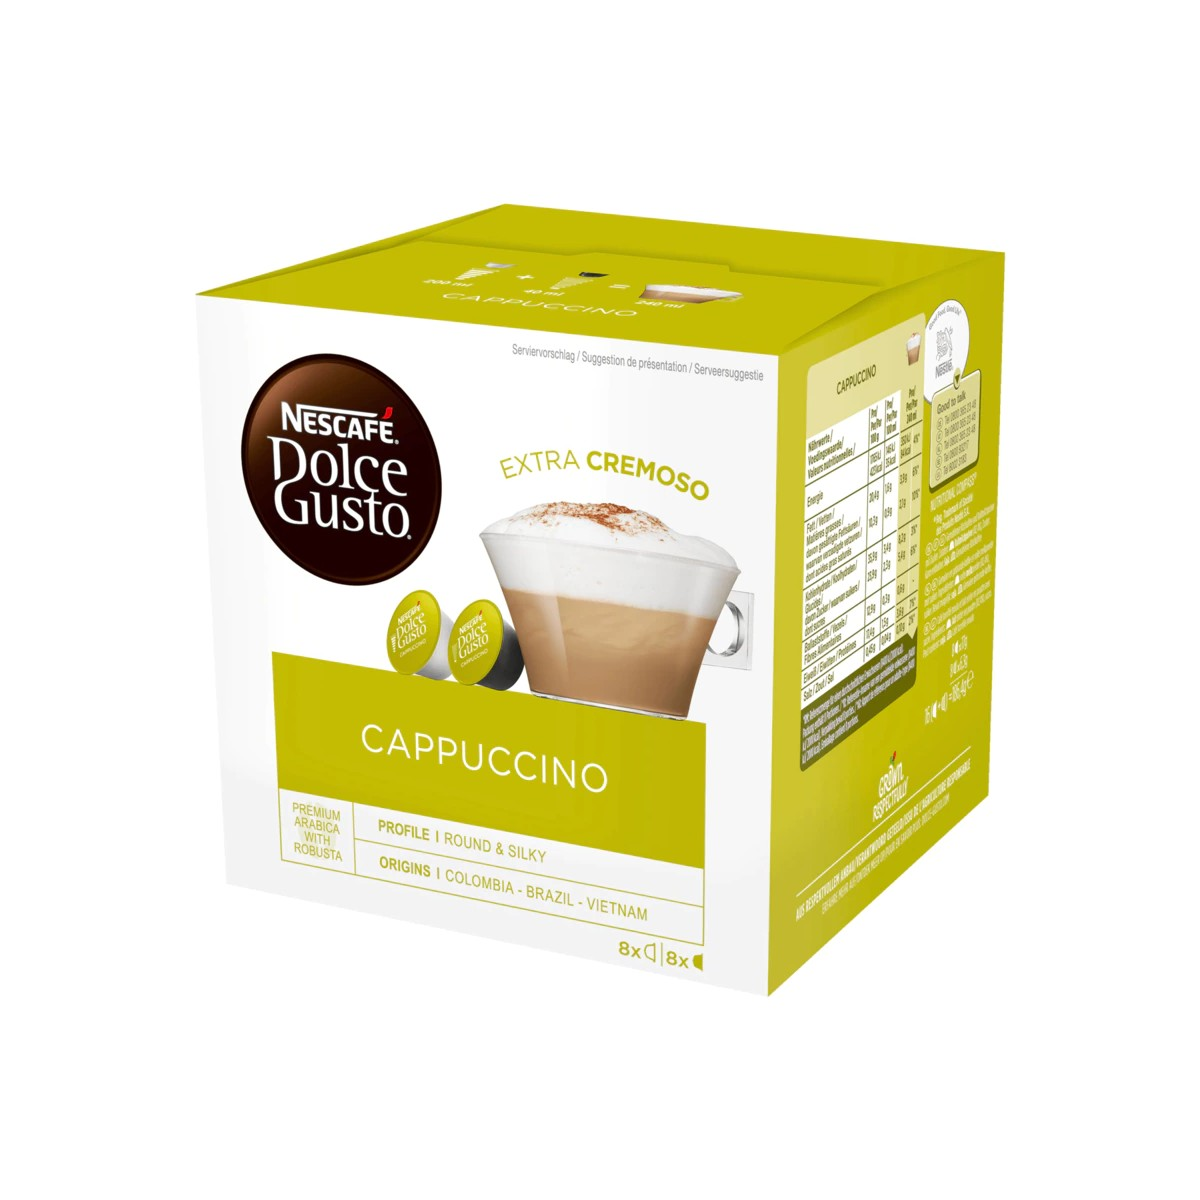 Buy Nescafé Dolce Gusto Cappuccino 16 Kapseln in Berlin with delivery